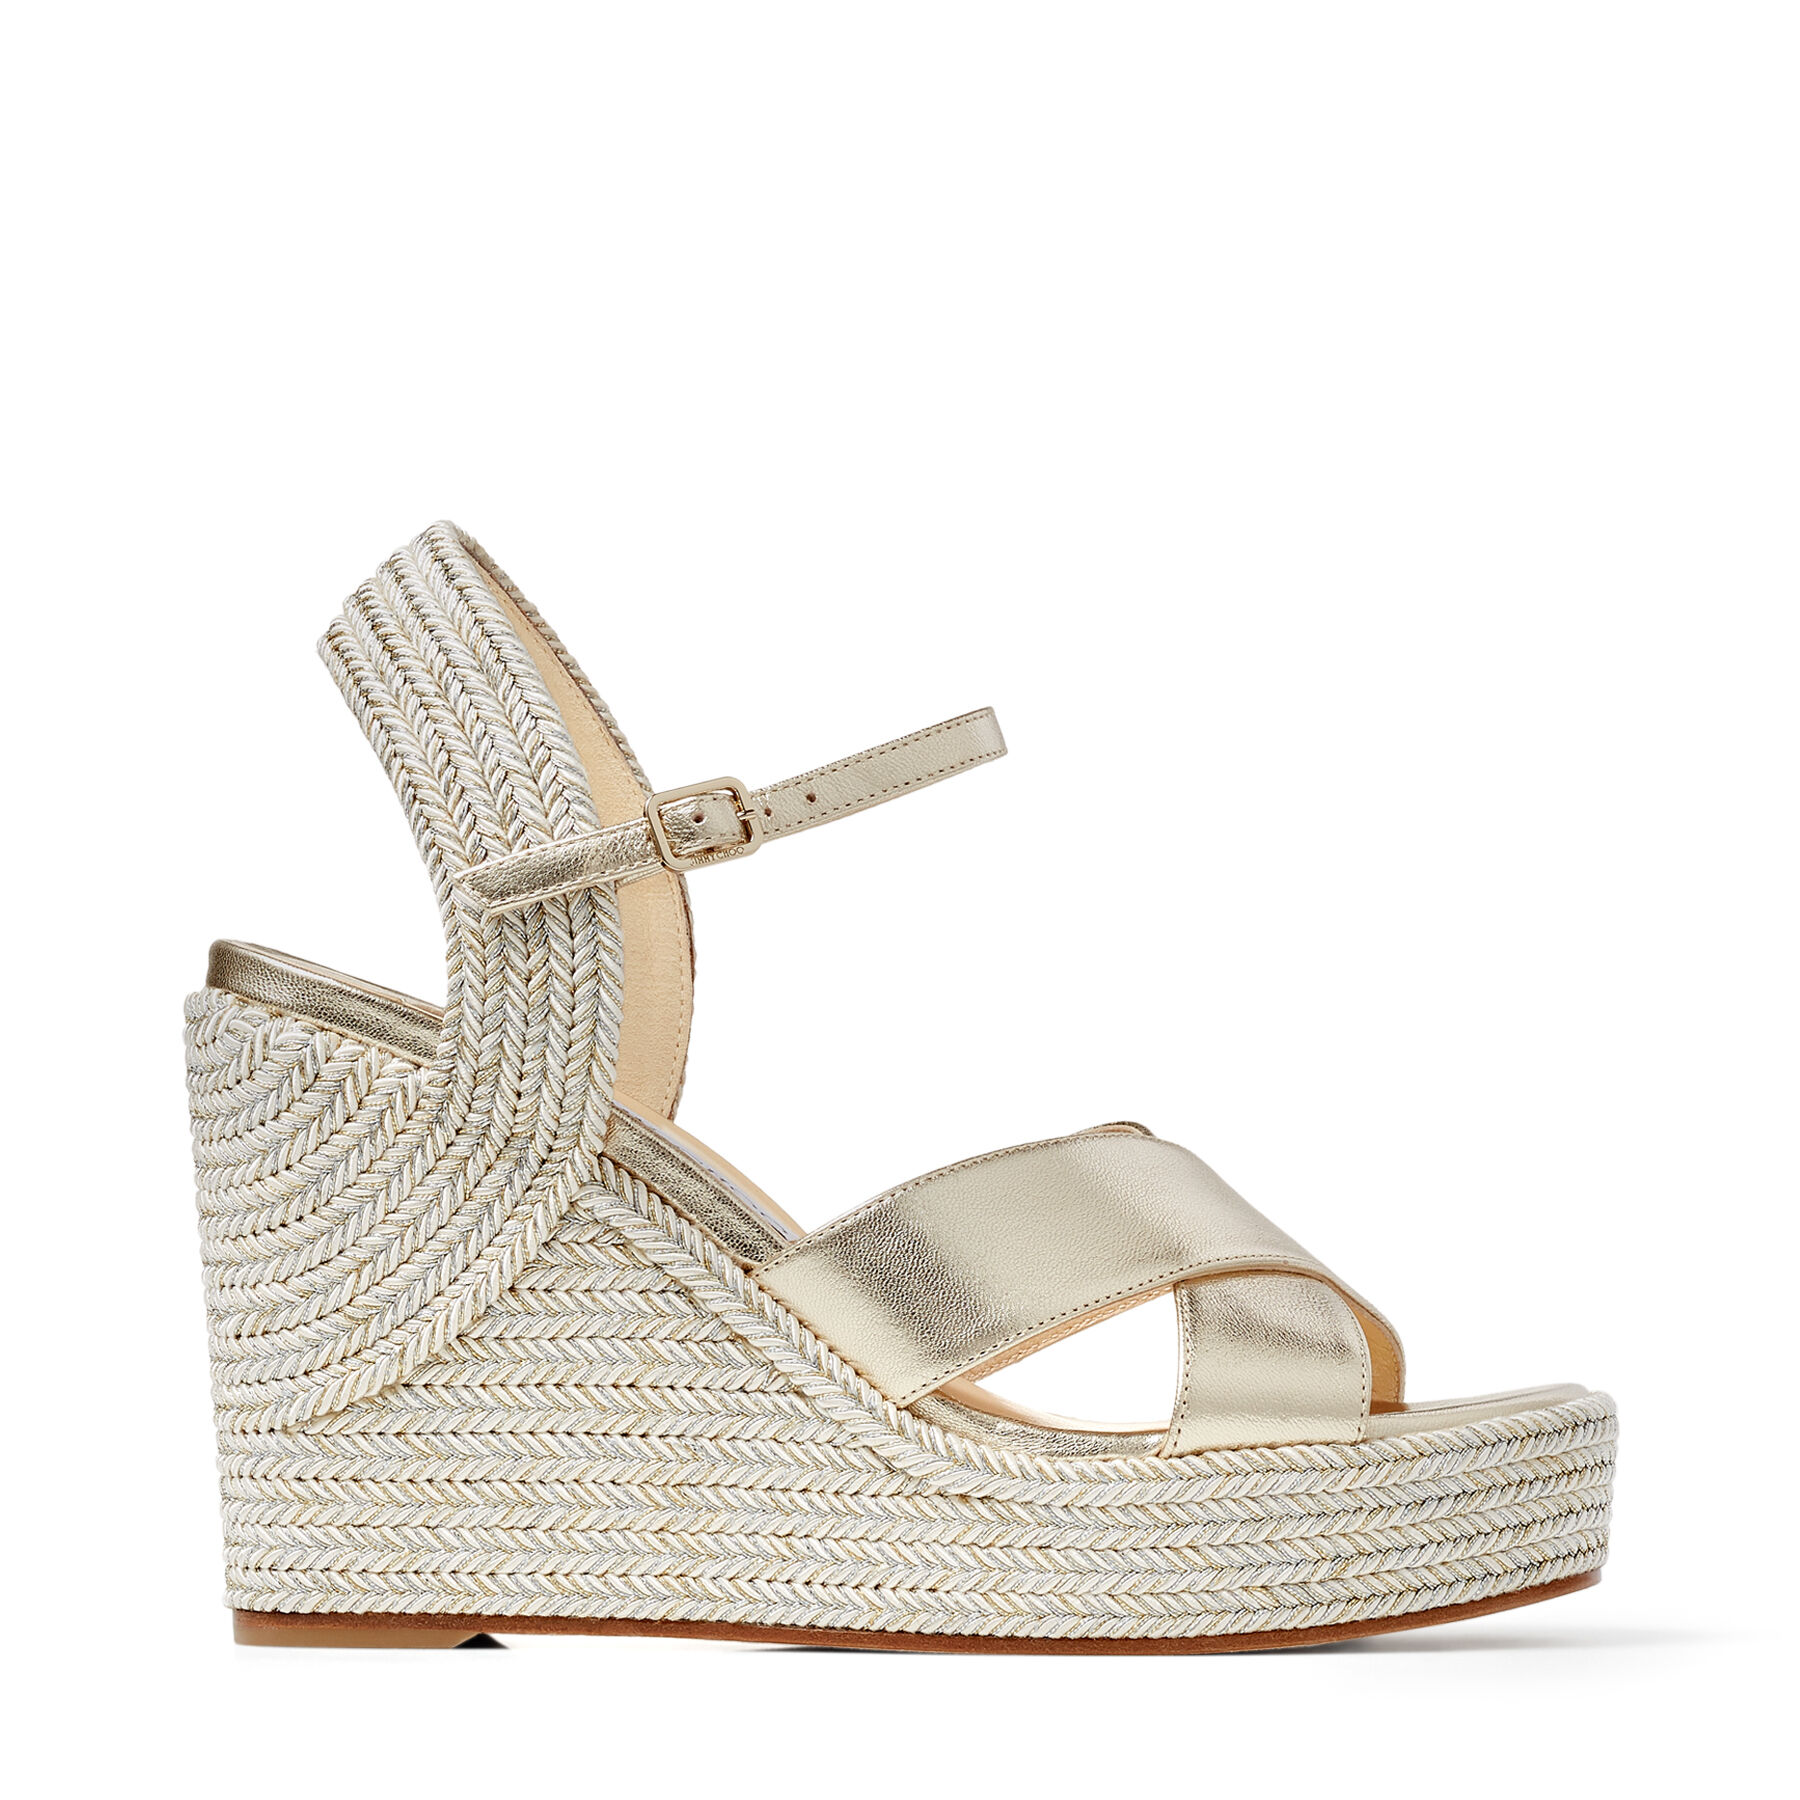 DELLENA 100 - Champagne Nappa Leather Wedge Sandals with Metallic Rope Thread